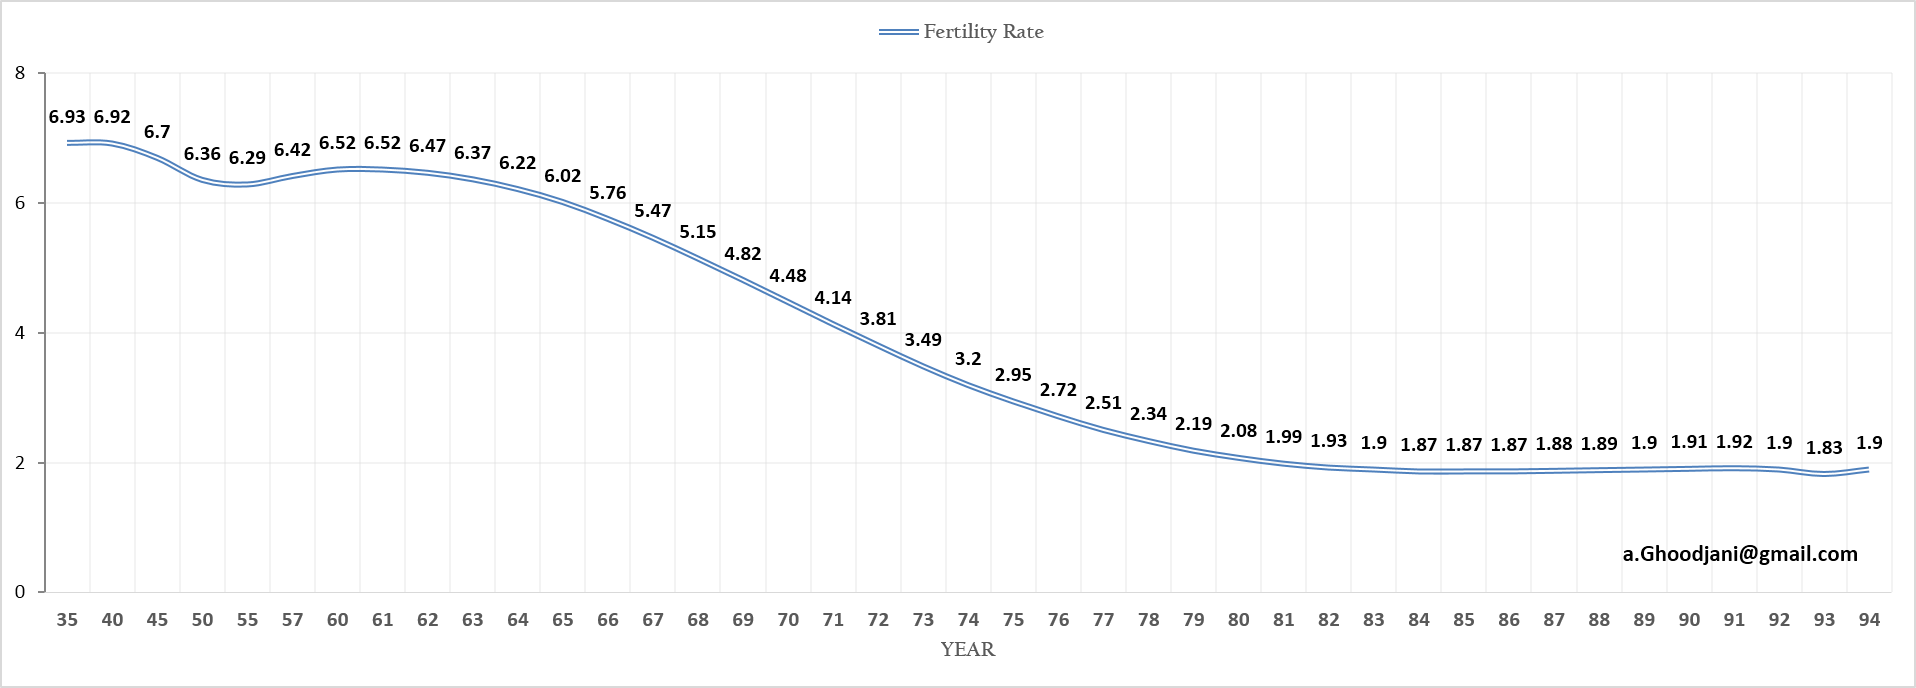 fertility-iran